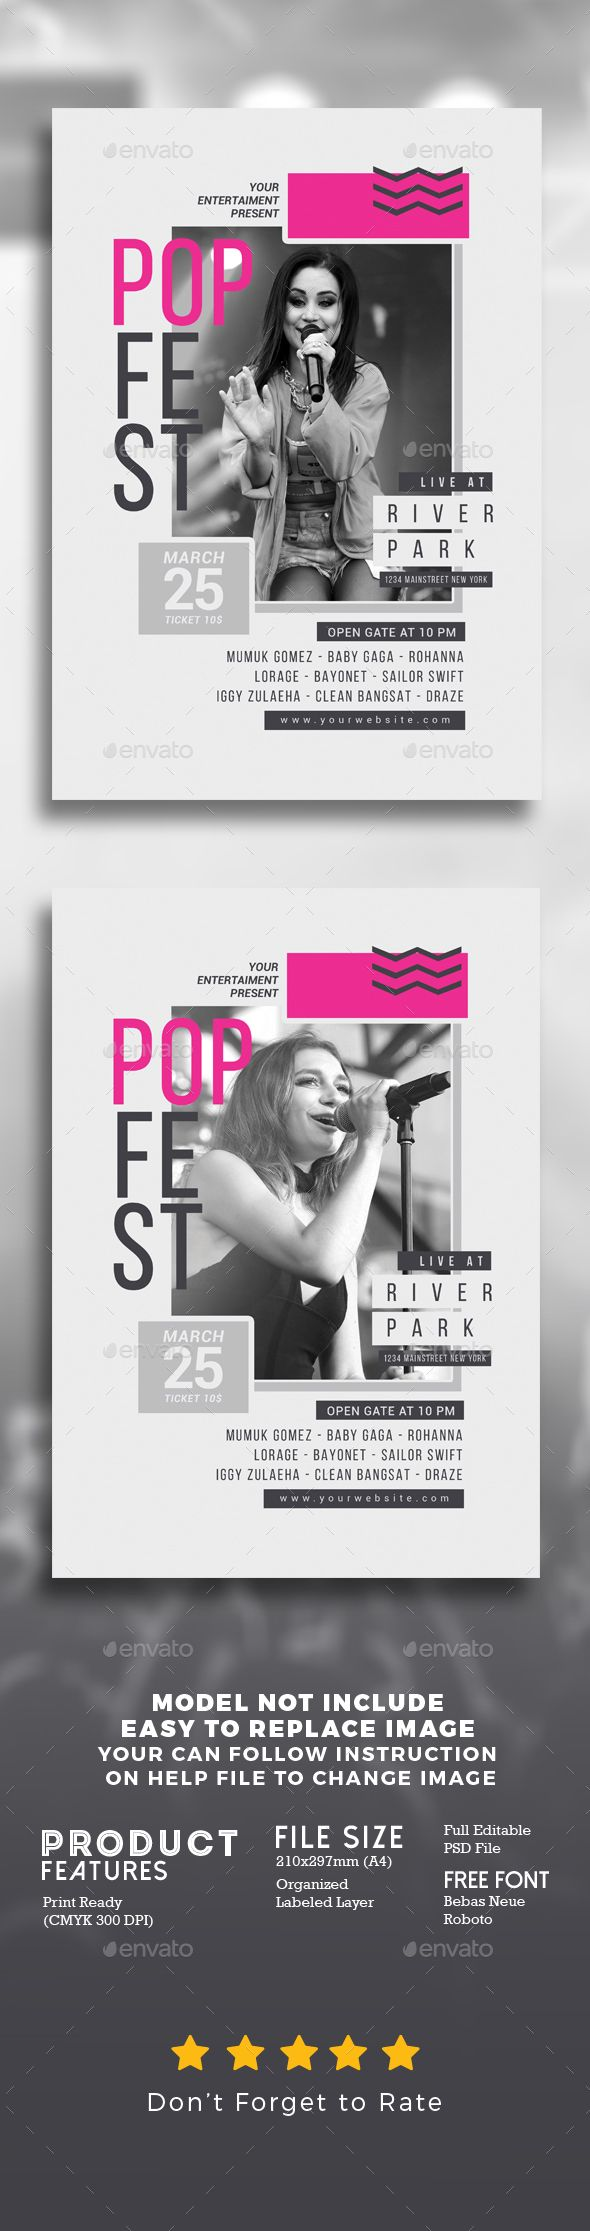 Pop Music Festival - #Events Flyers Download Here: https://graphicriver.net/item/pop-music-festival/19893450?ref=suz_562geid